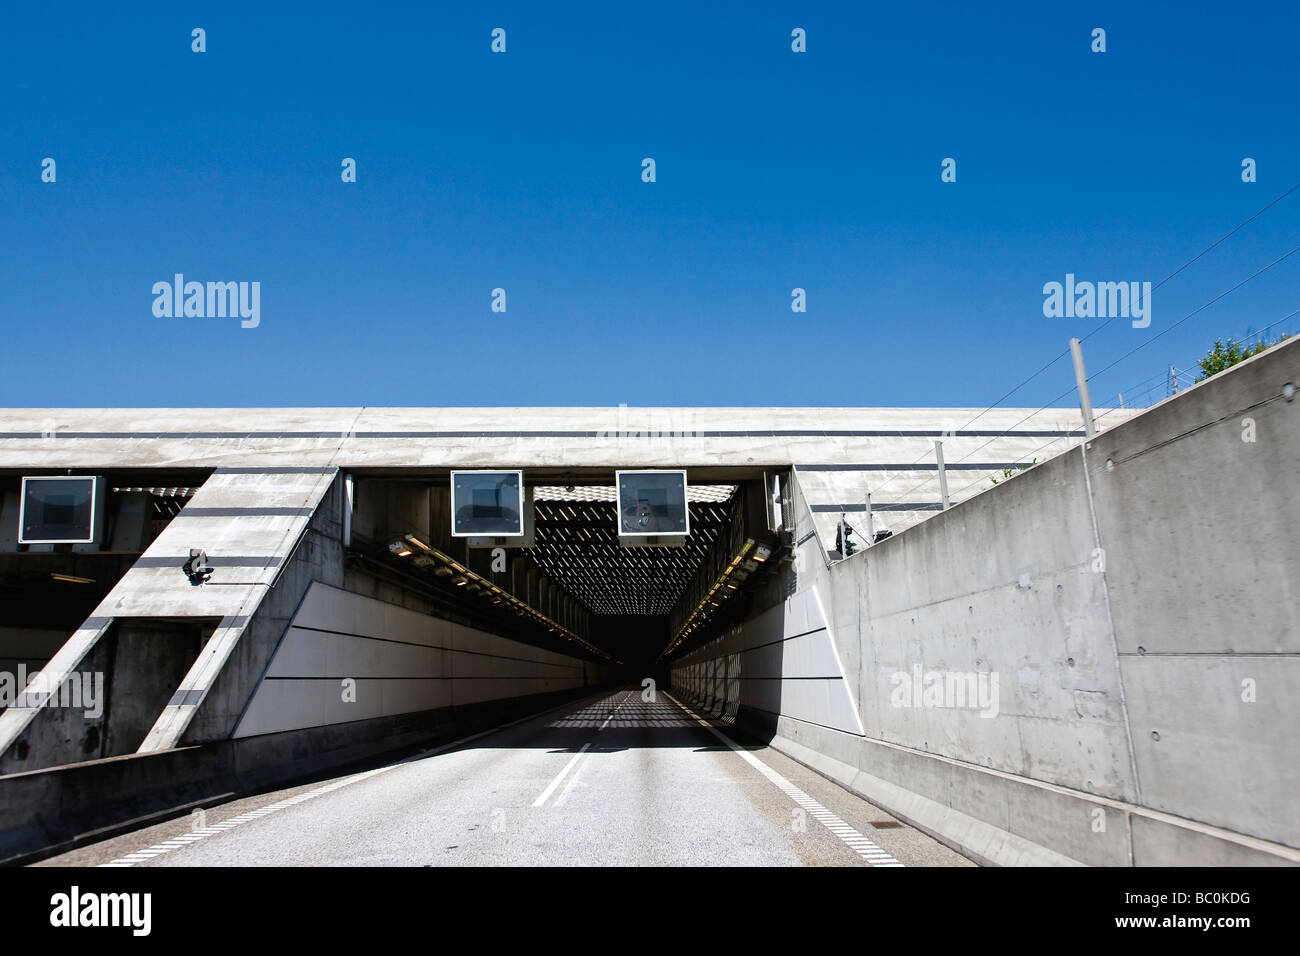 entrance to the tunnel at the oresund bridge between denmark and stock photo 24601516 alamy. Black Bedroom Furniture Sets. Home Design Ideas